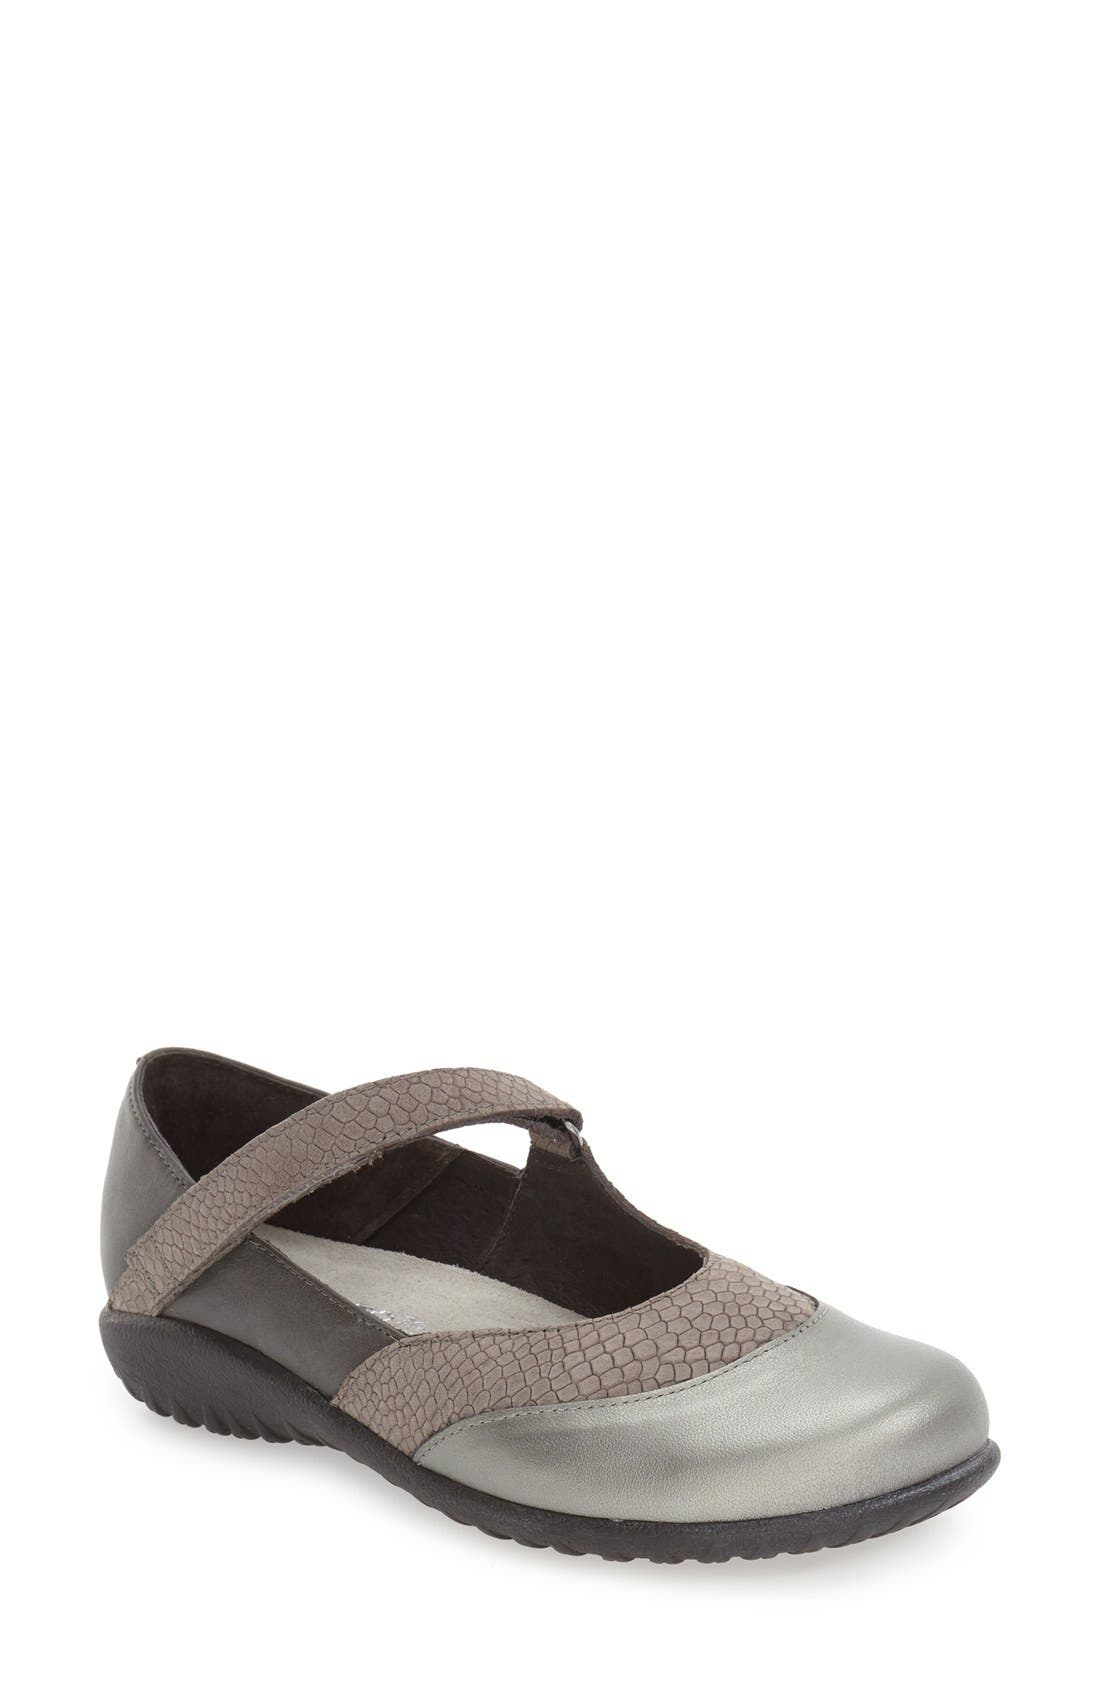 Naot 'Luga' Mary Jane Wedge (Women)